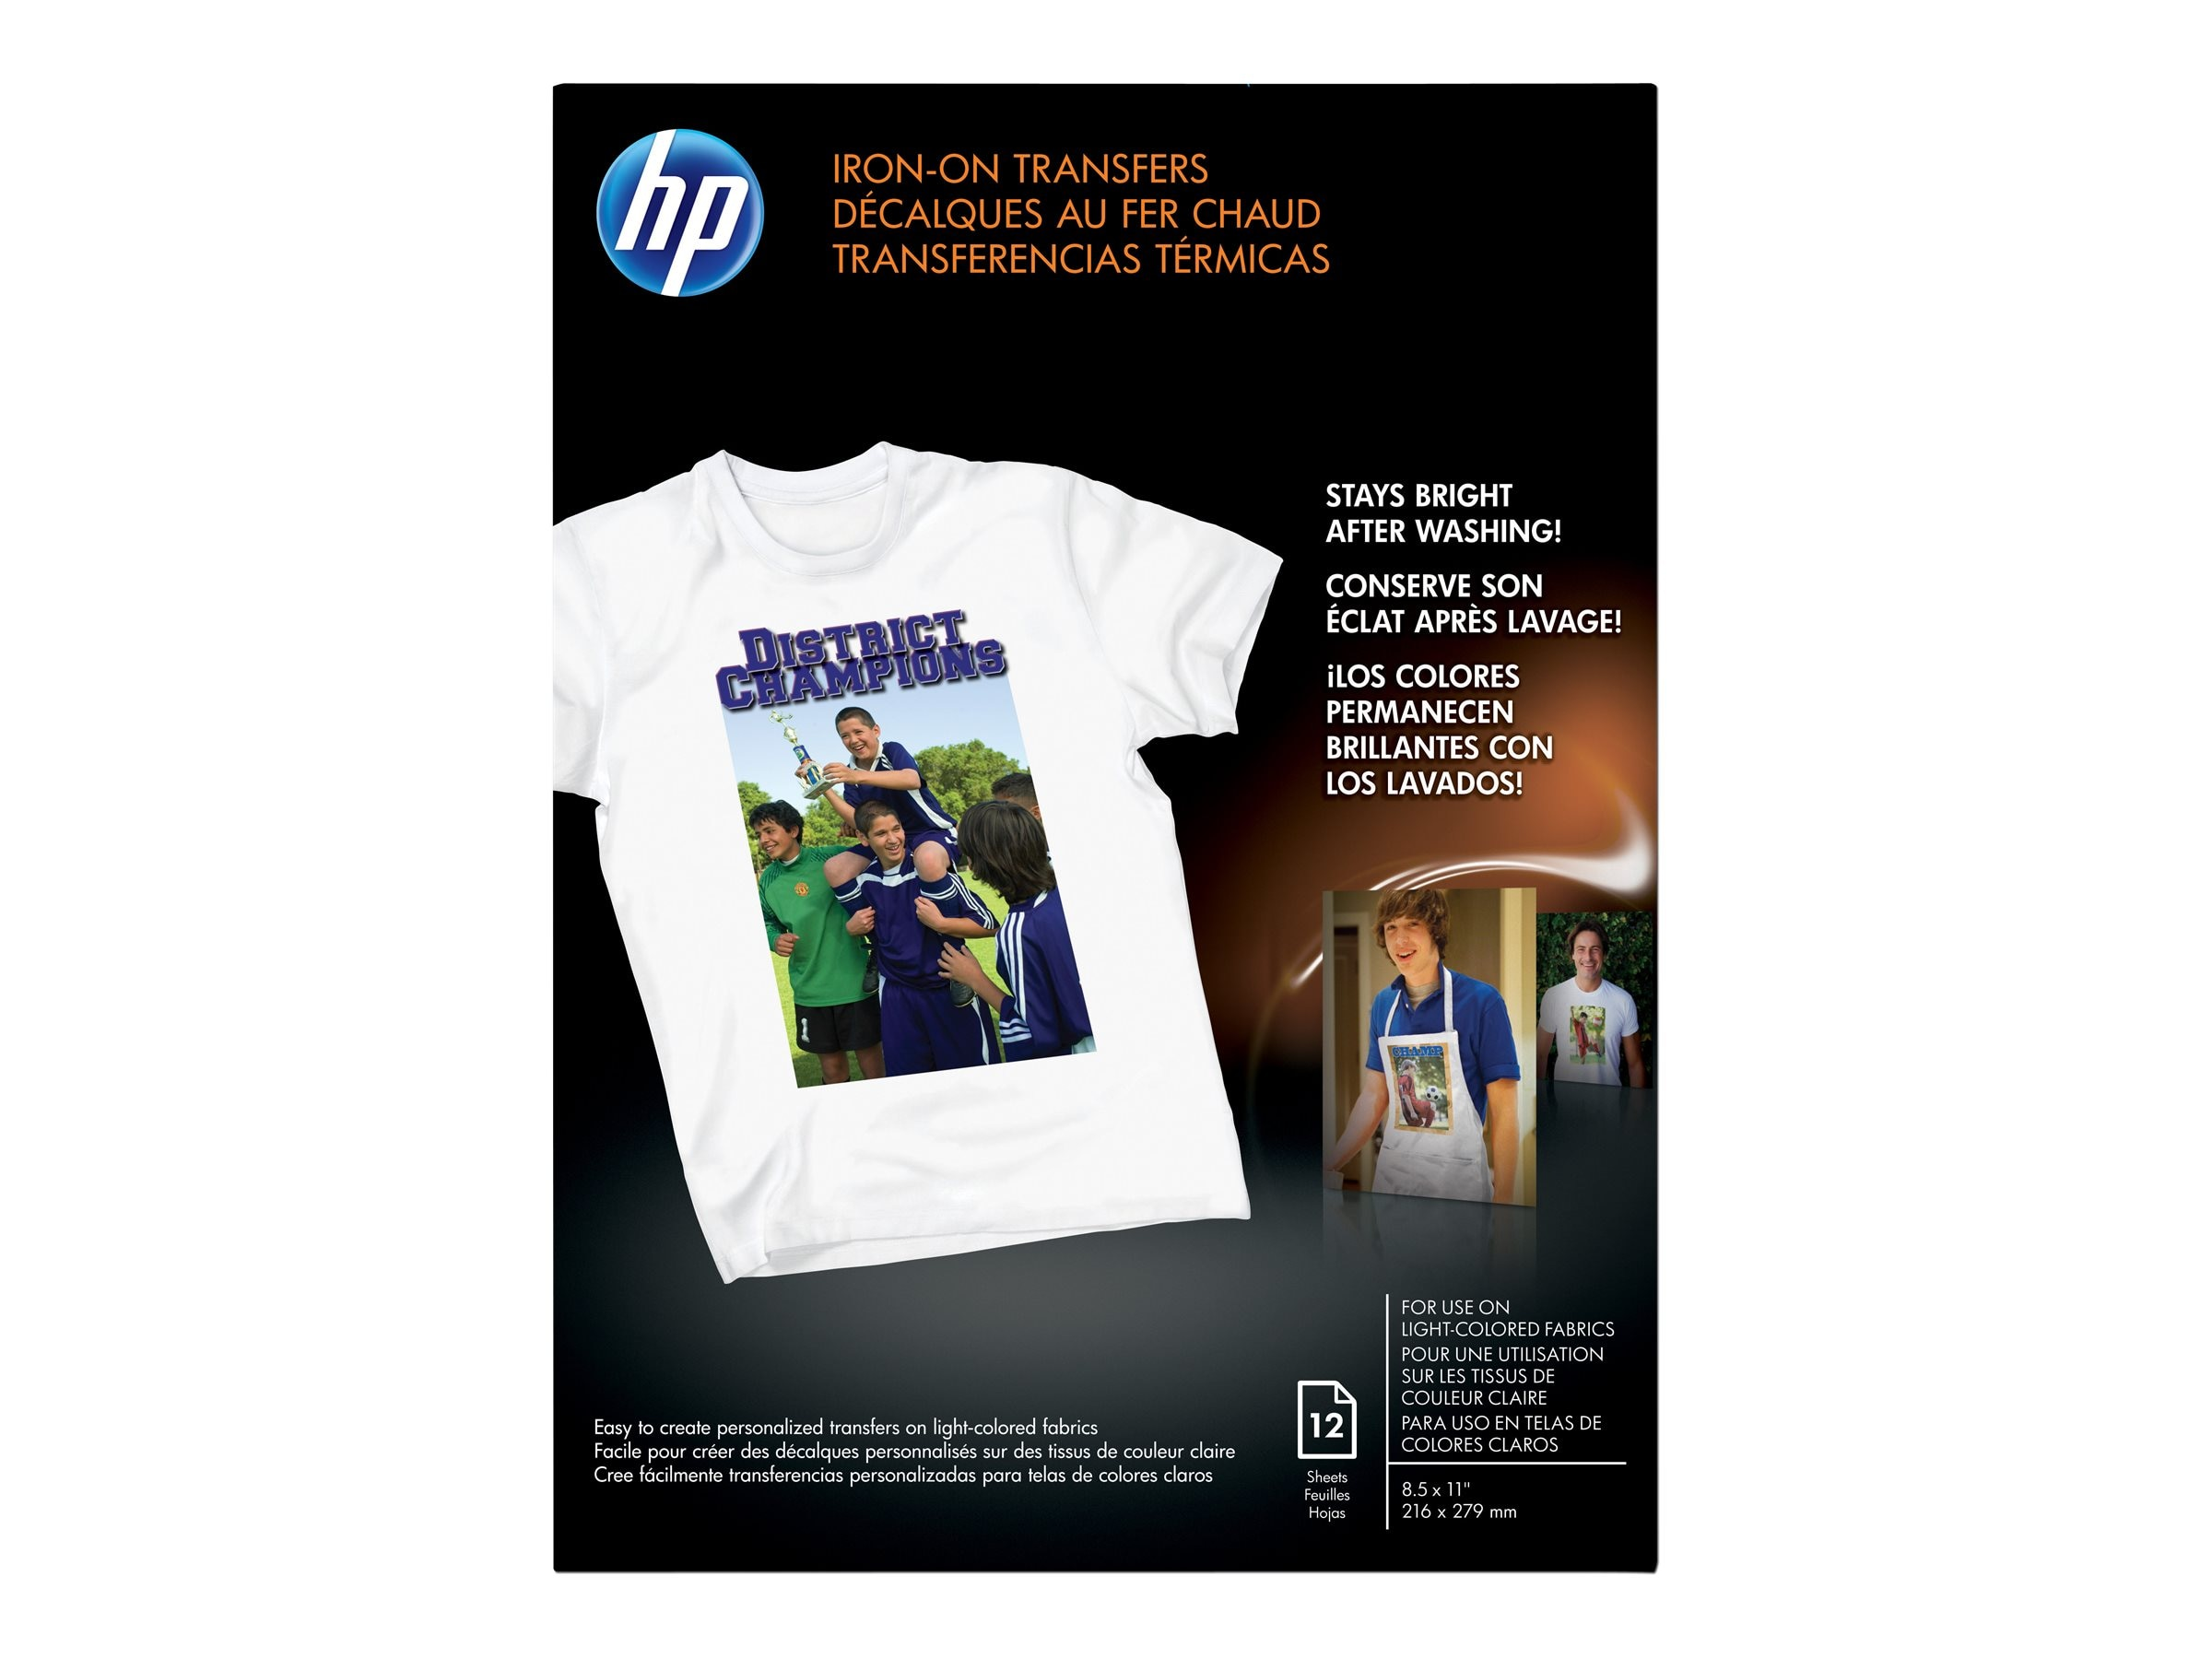 HP Iron-on T-Shirt Transfers - 10 Sheets C6049A, C6049A